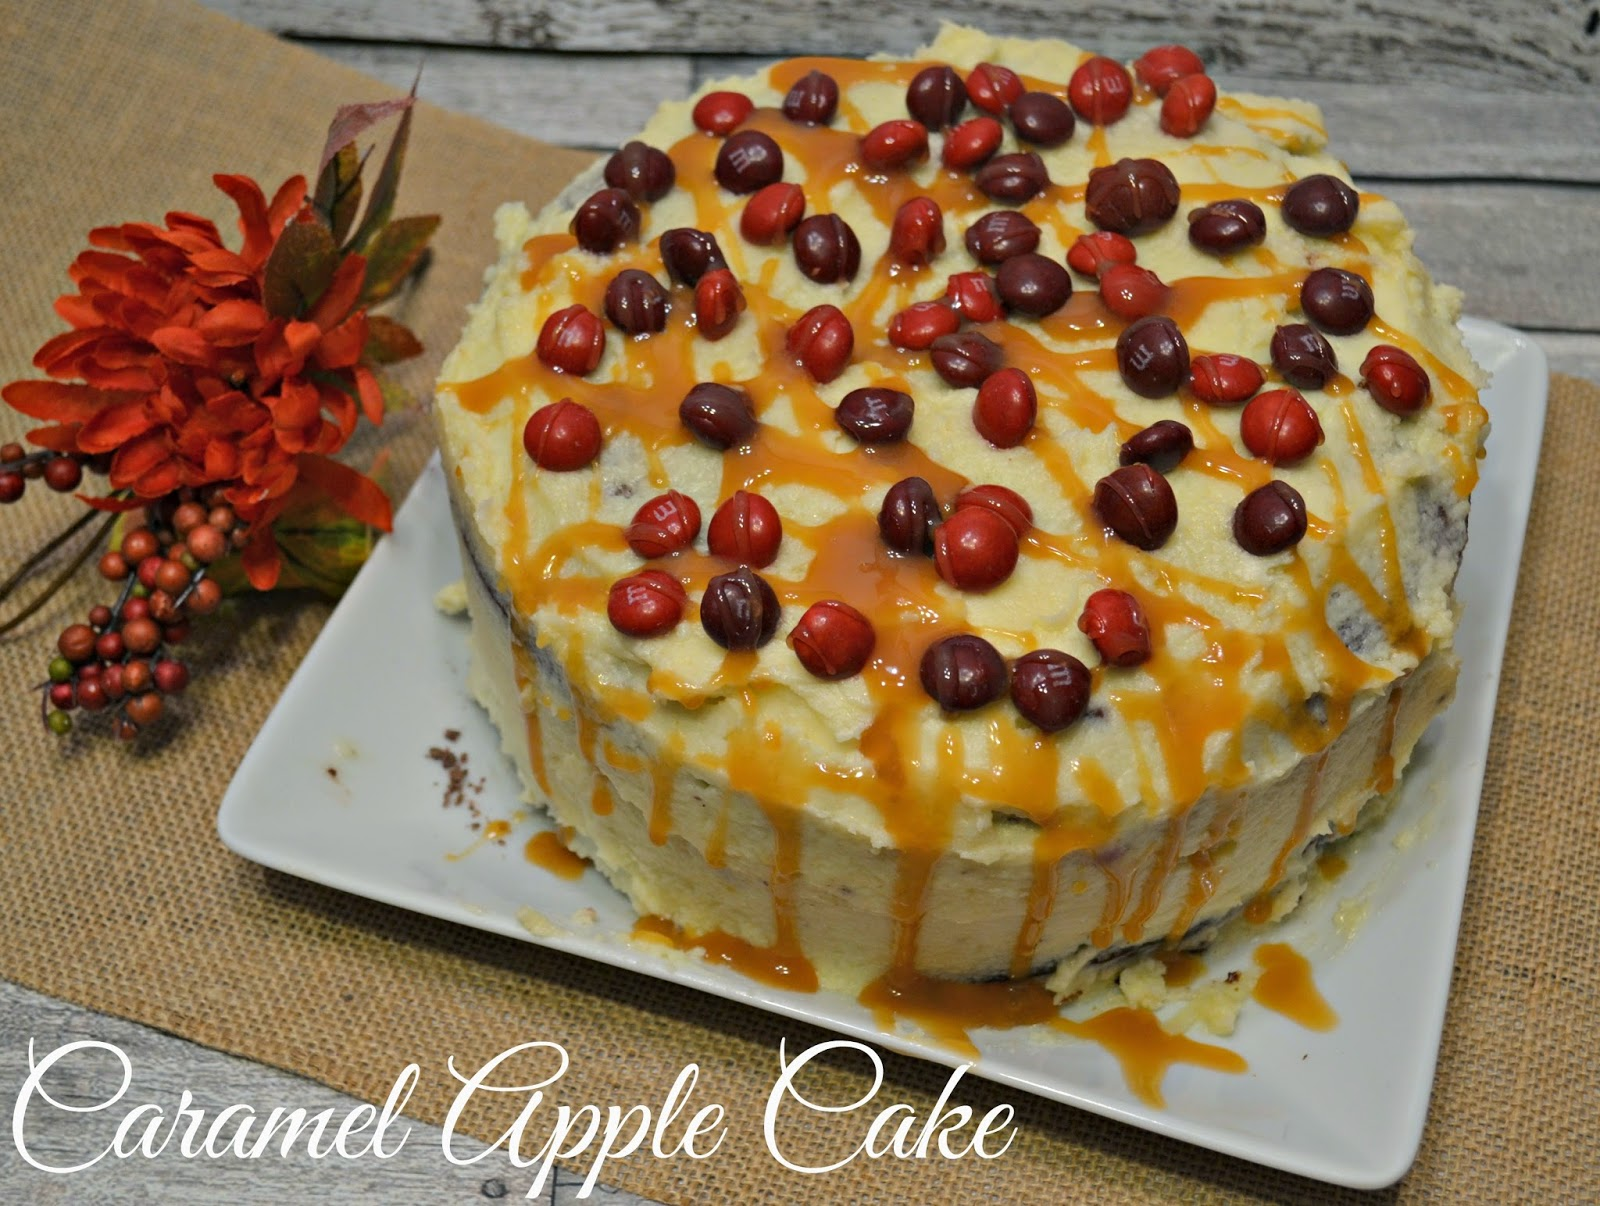 Fall Recipes To Spice Up Your Kitchen:  Caramel Apple Cake and Fall Apple and Spice Stove Top Potpourri.  M&M's, Fall Recipes, Candy Corn, M&Ms, Candy Apple, Candy Corn, Apple Sauce, Apple Juice, Apple Recipes.  The flavors of Fall.  Stove Top Potpourri.  Cakes made with Applesauce.